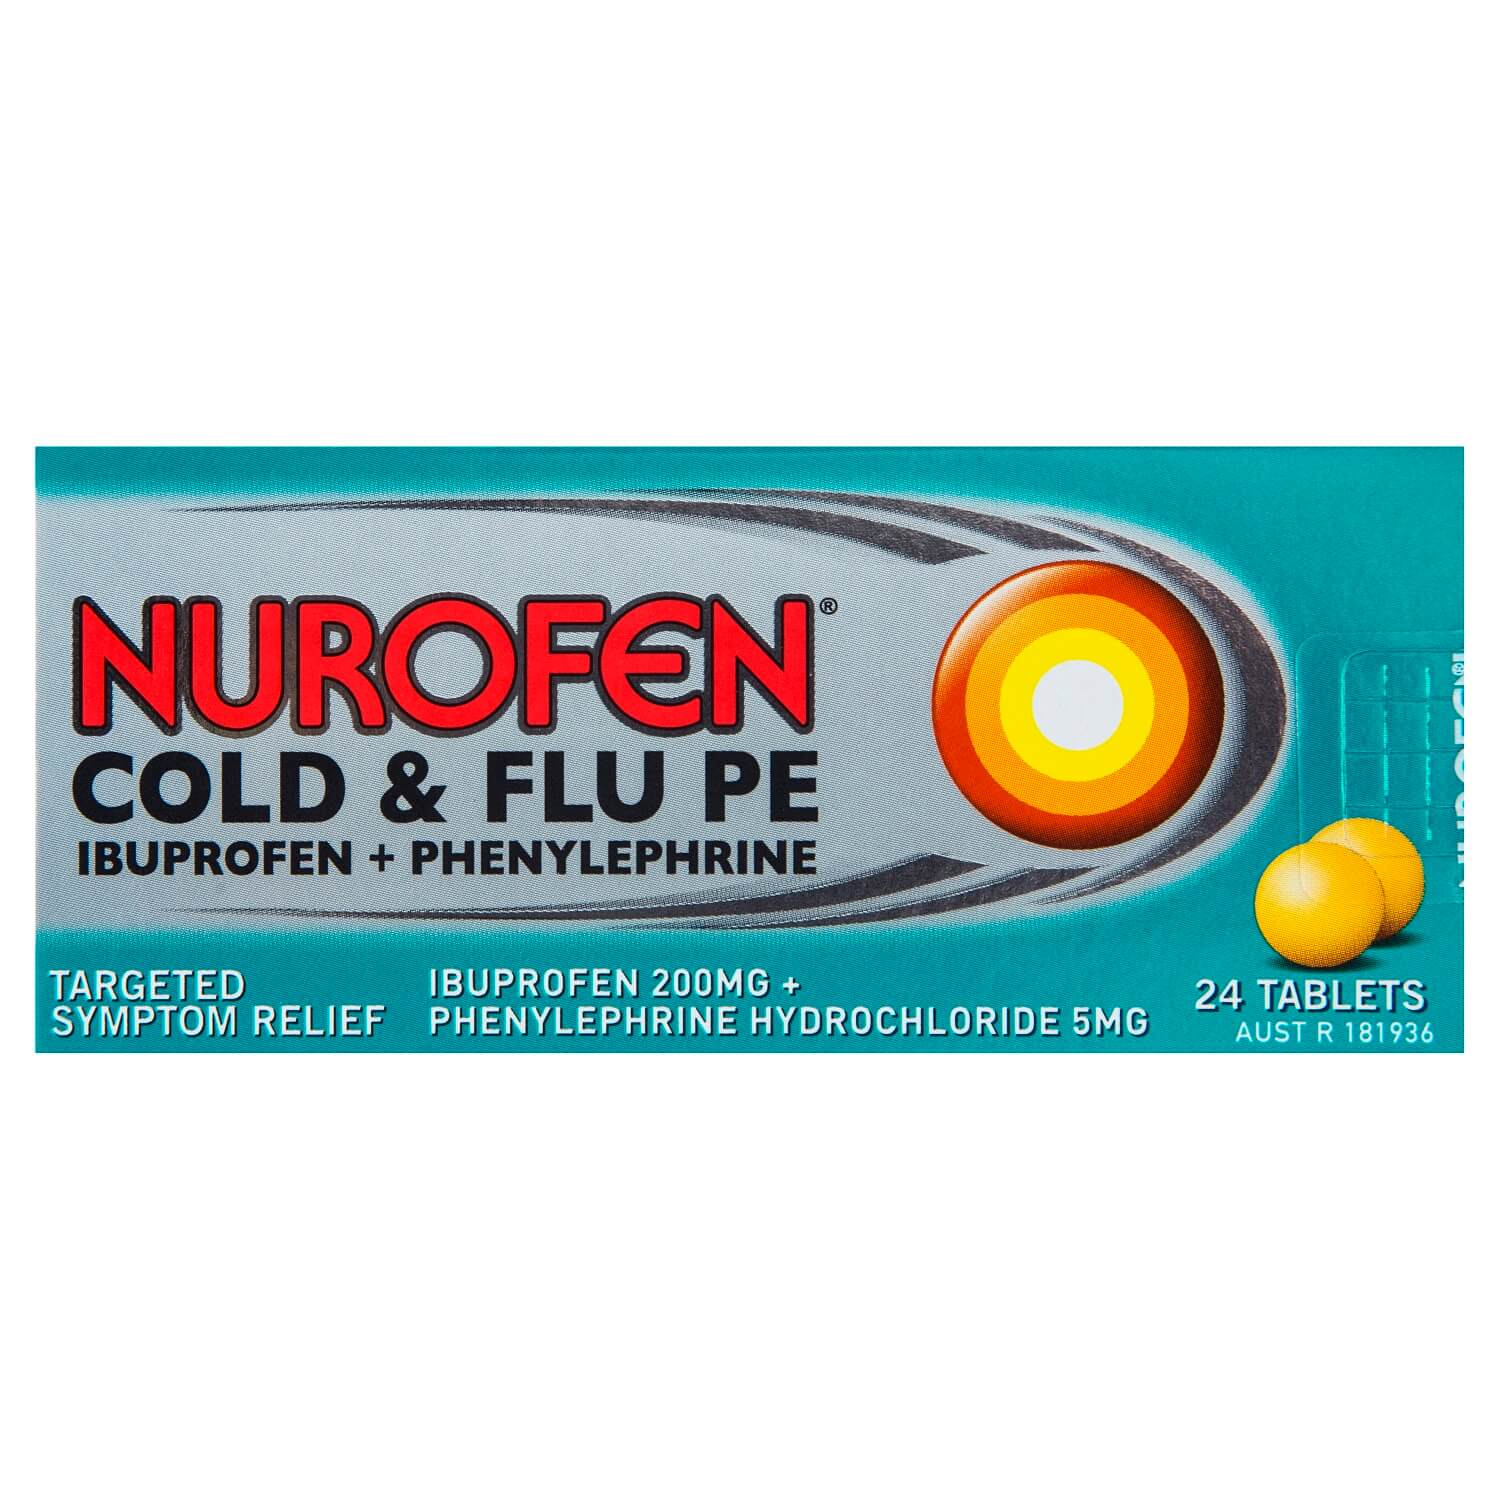 Nurofen Cold and Flu PE